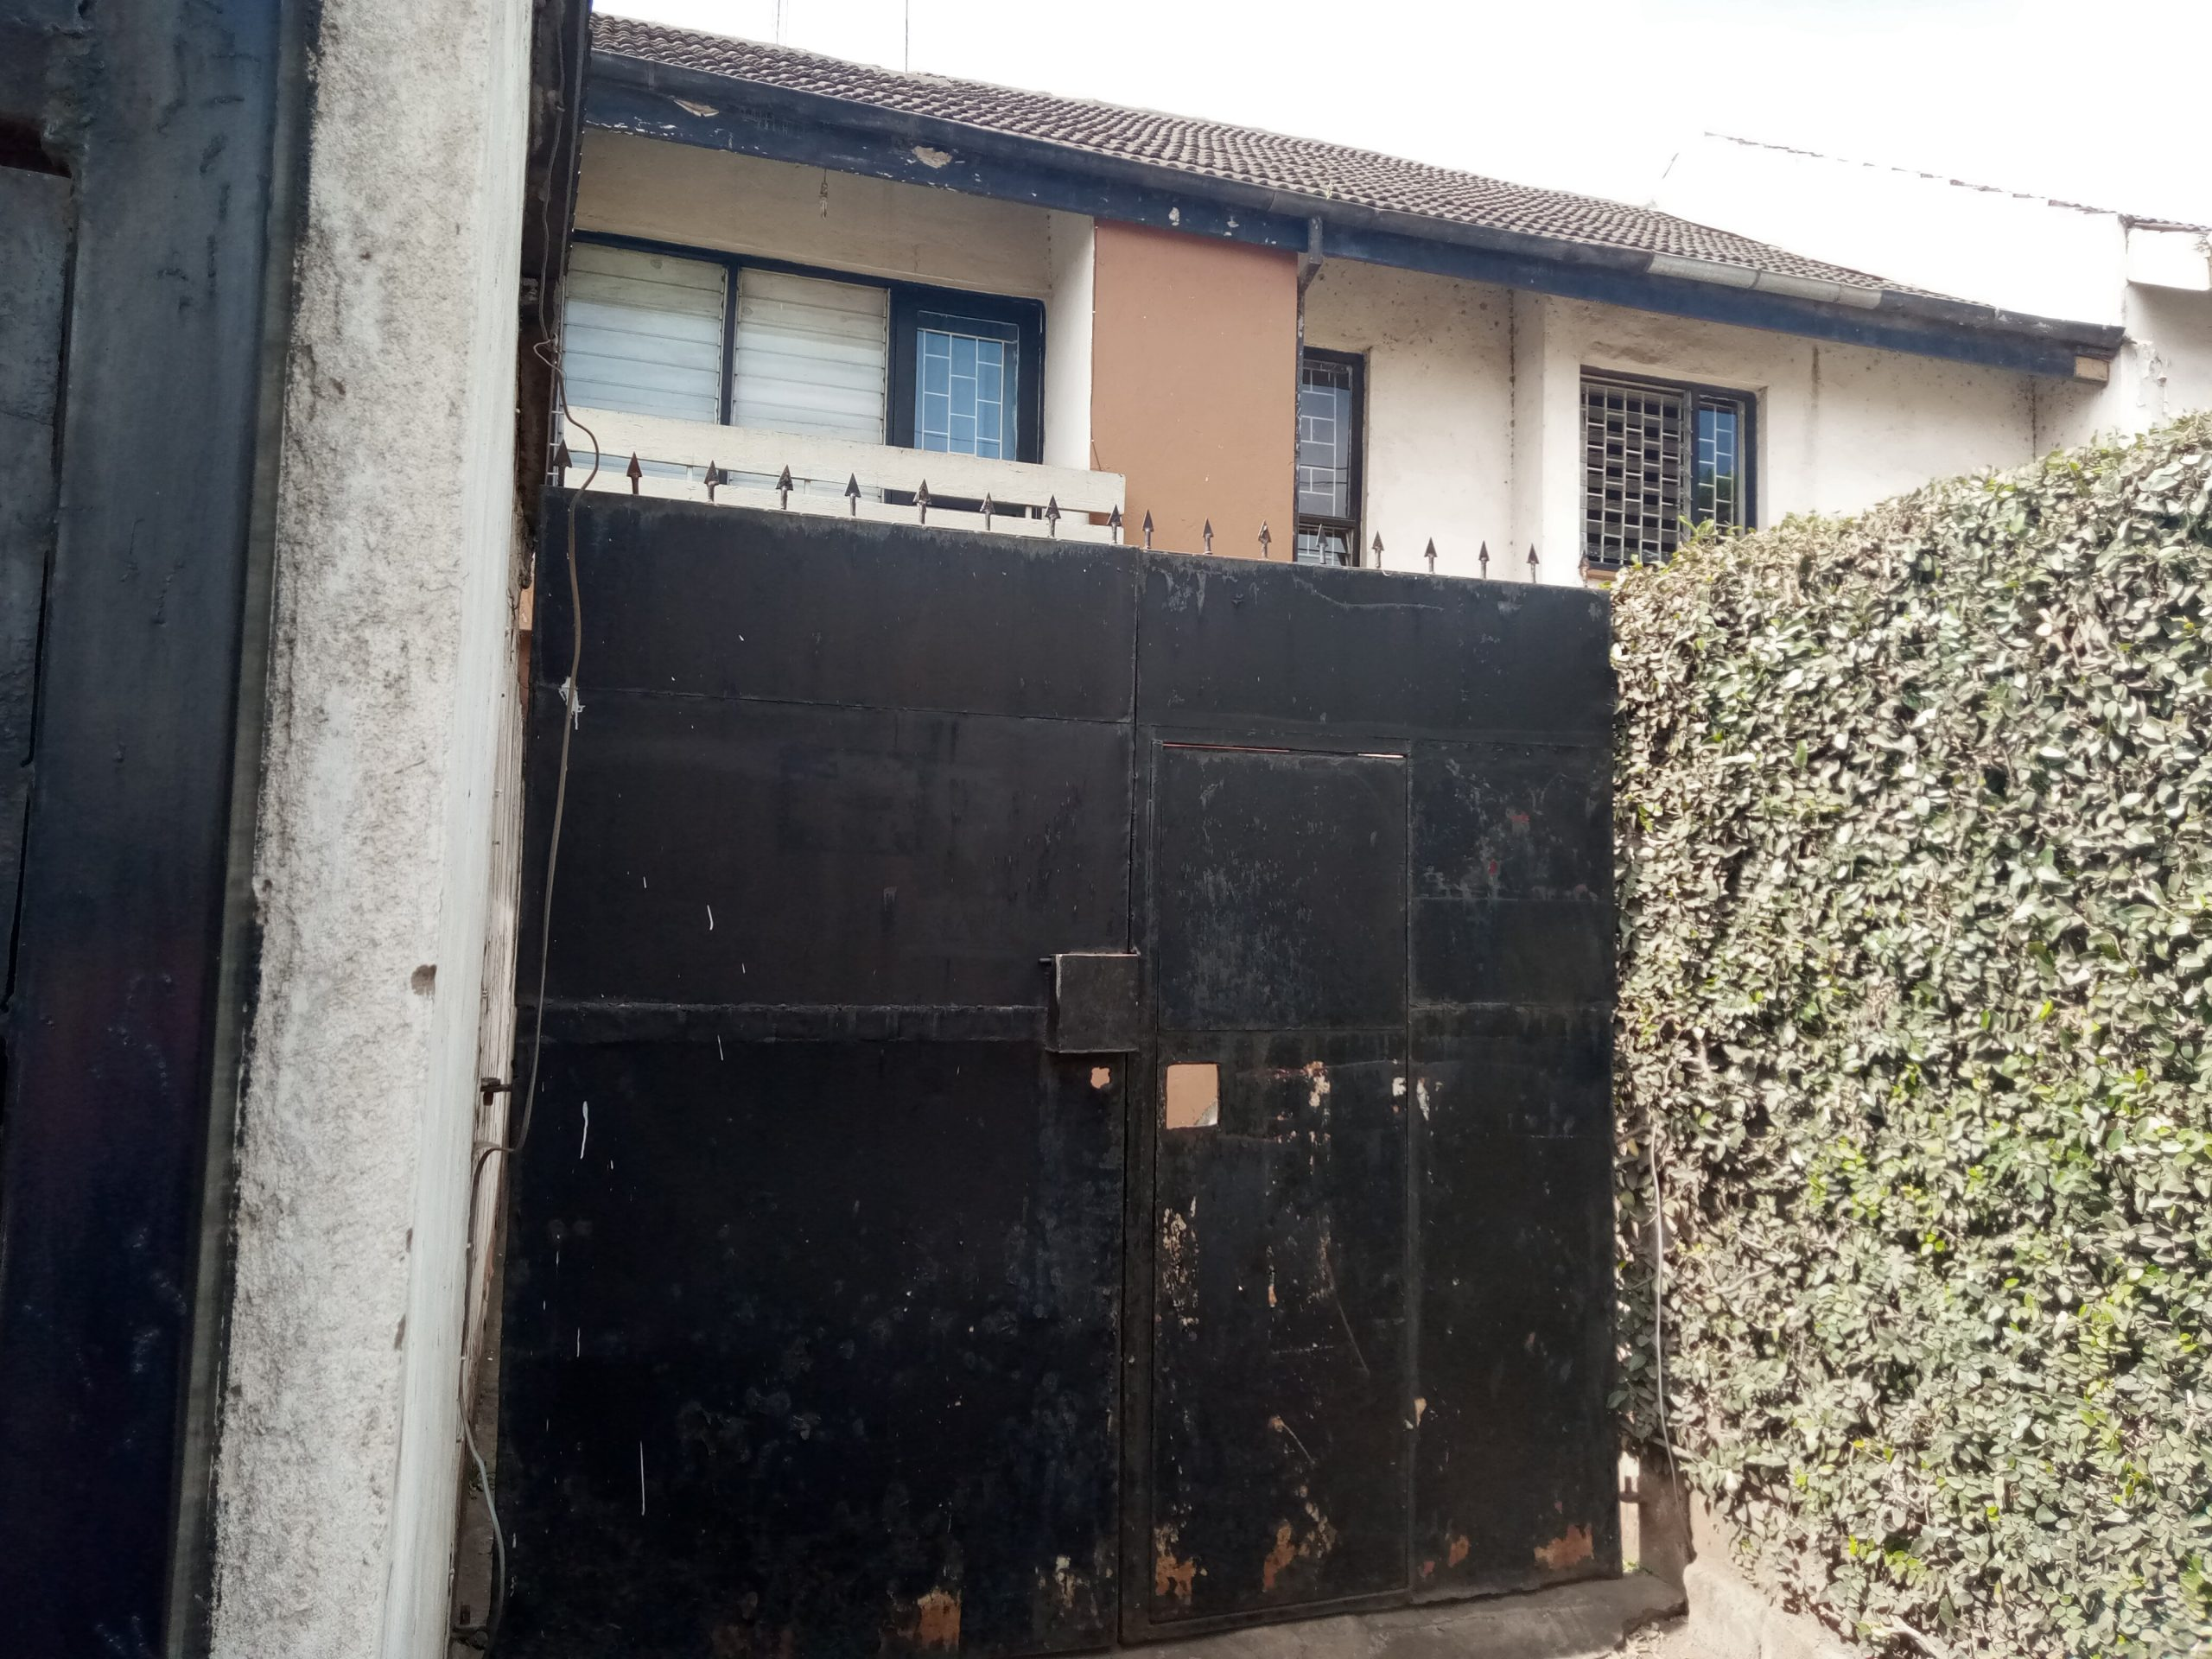 3 Bedroom house for sale on Riara Road